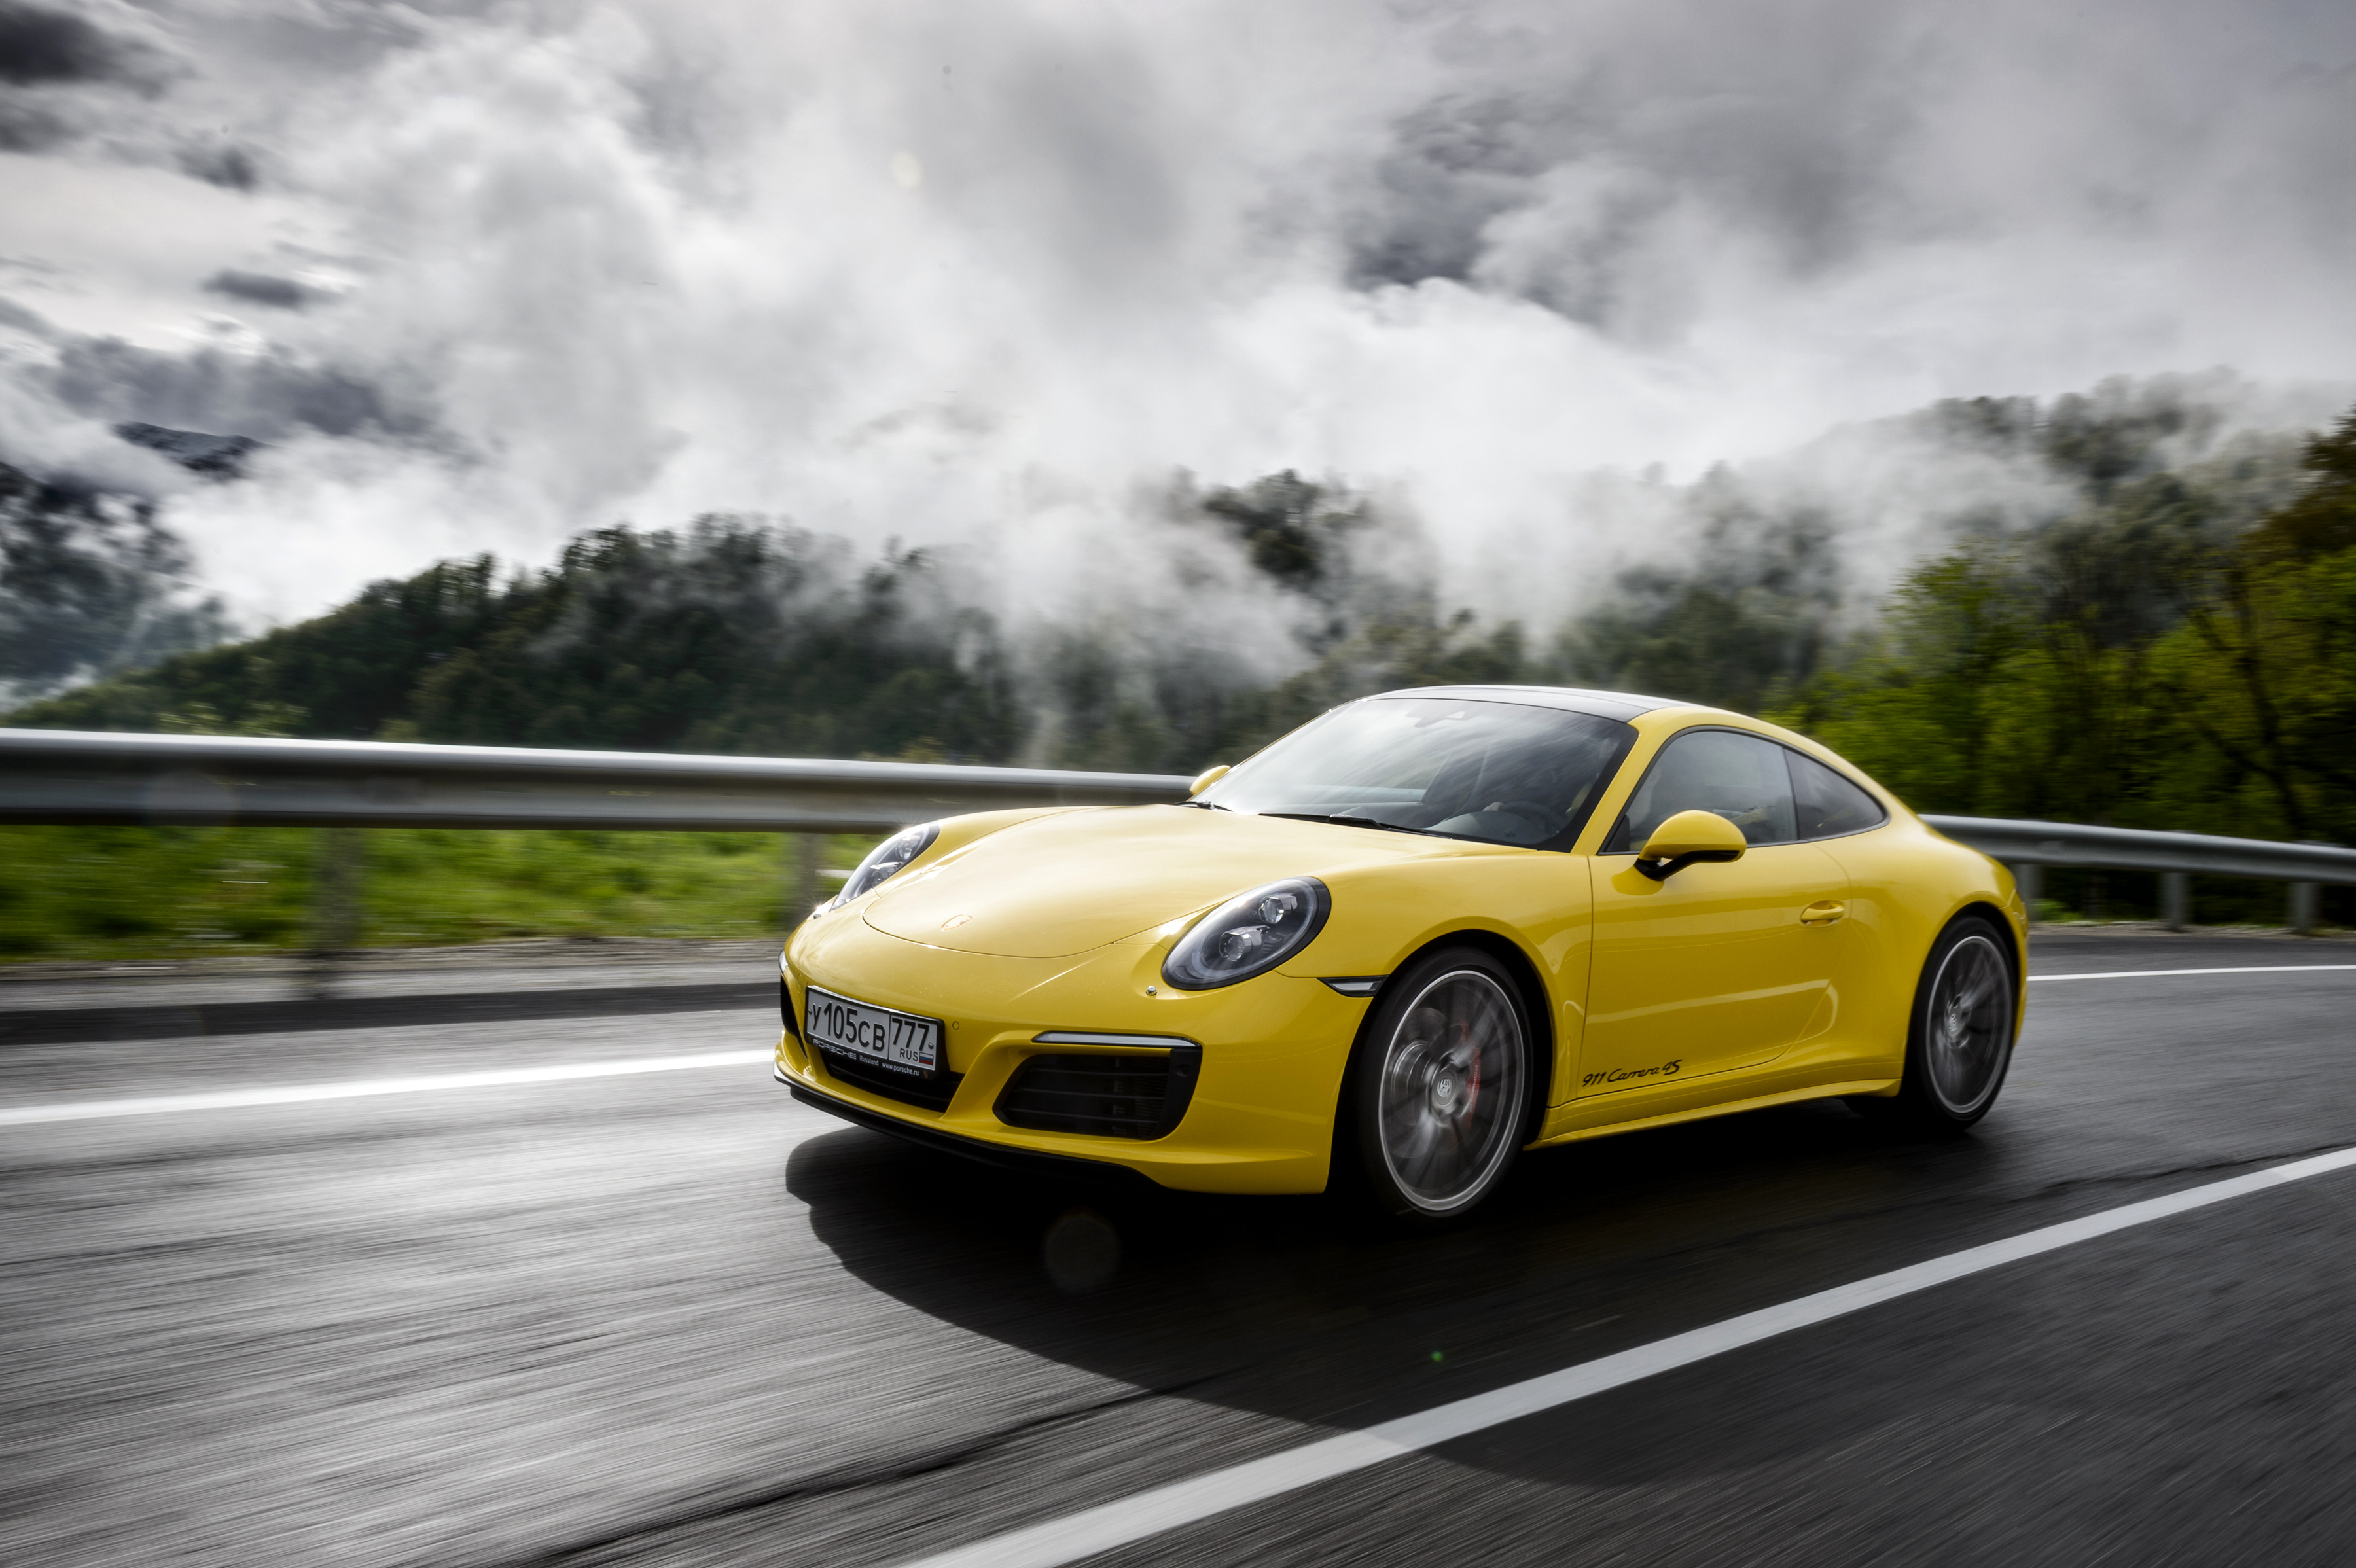 Porsche 911 carrera wallpapers pictures images - Porsche 911 carrera s wallpaper ...